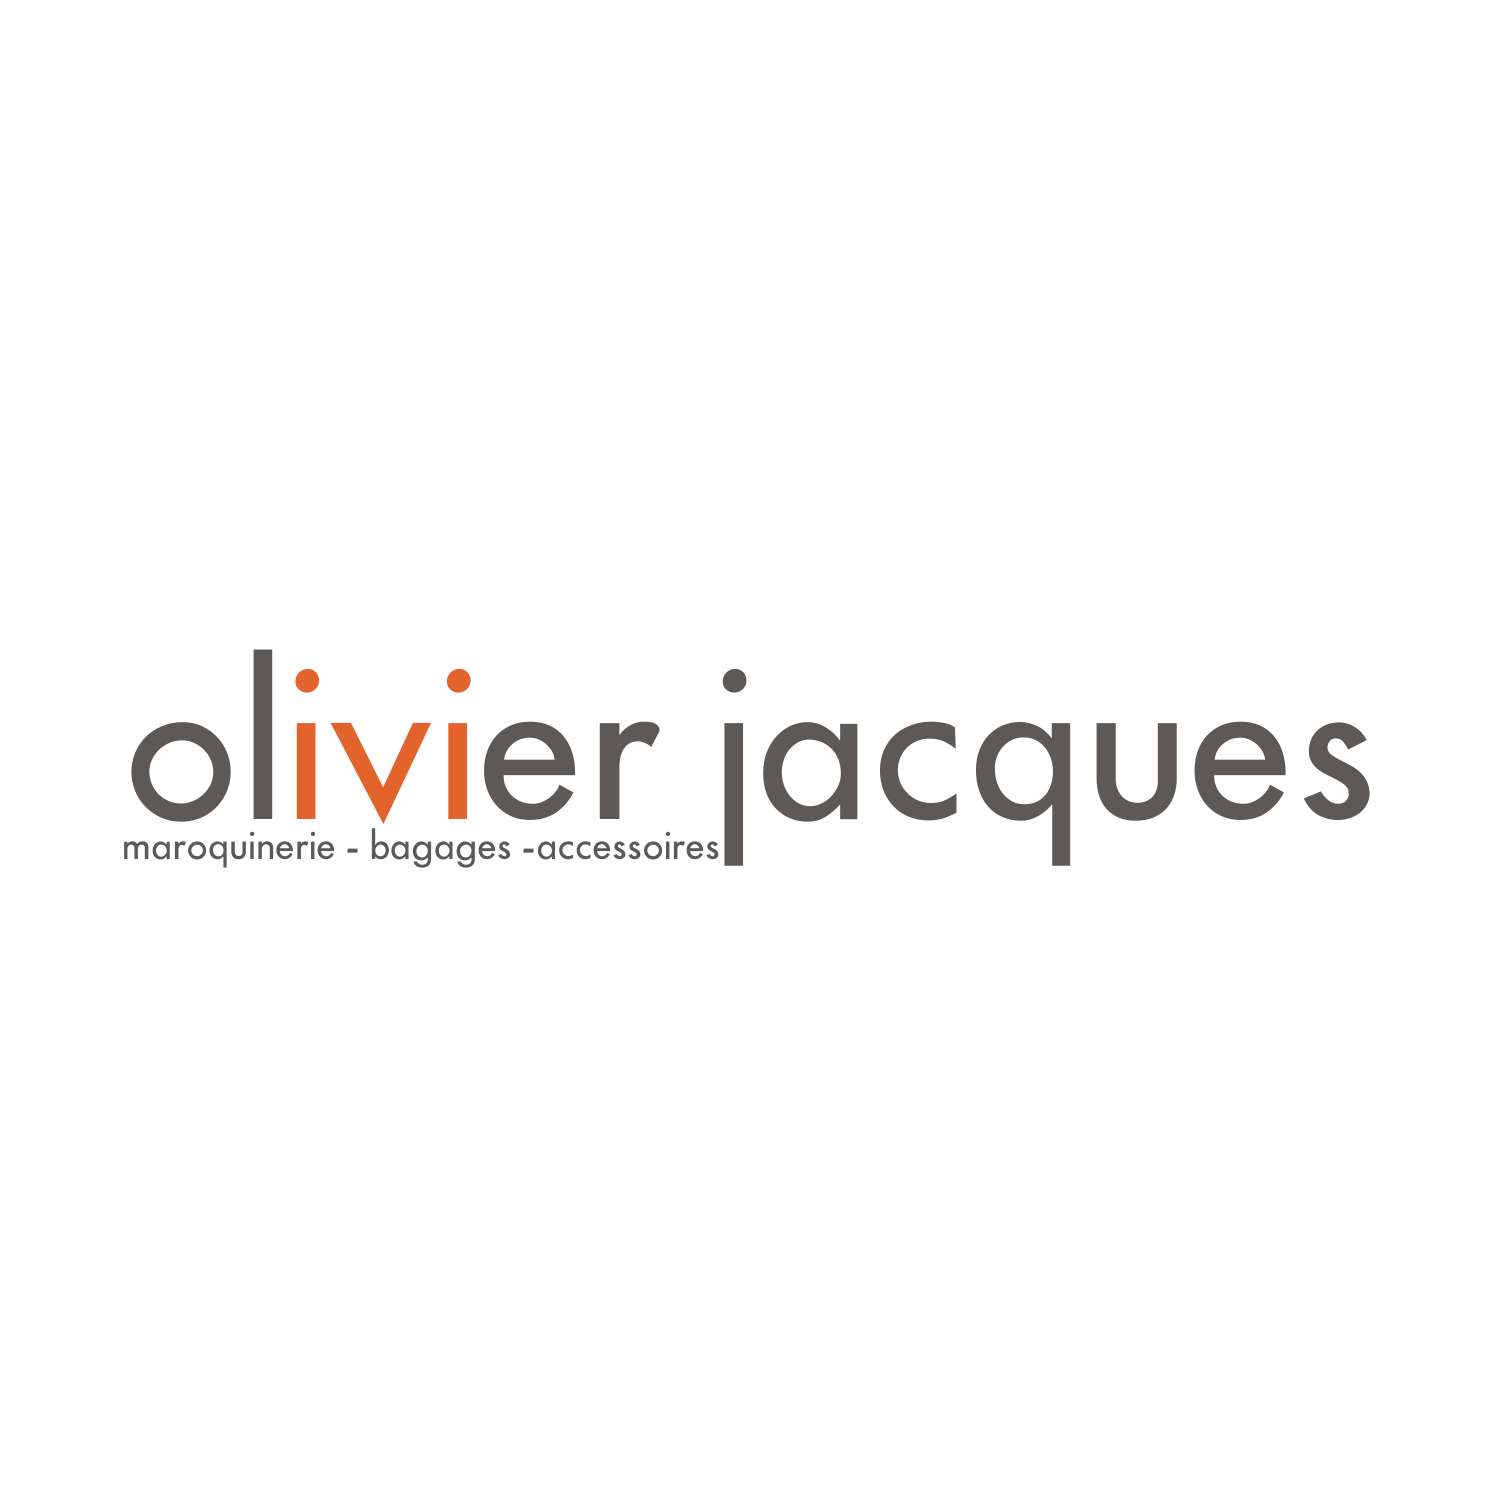 monaco-carlo-app-commercant-olivier-jacques-maroquinerie